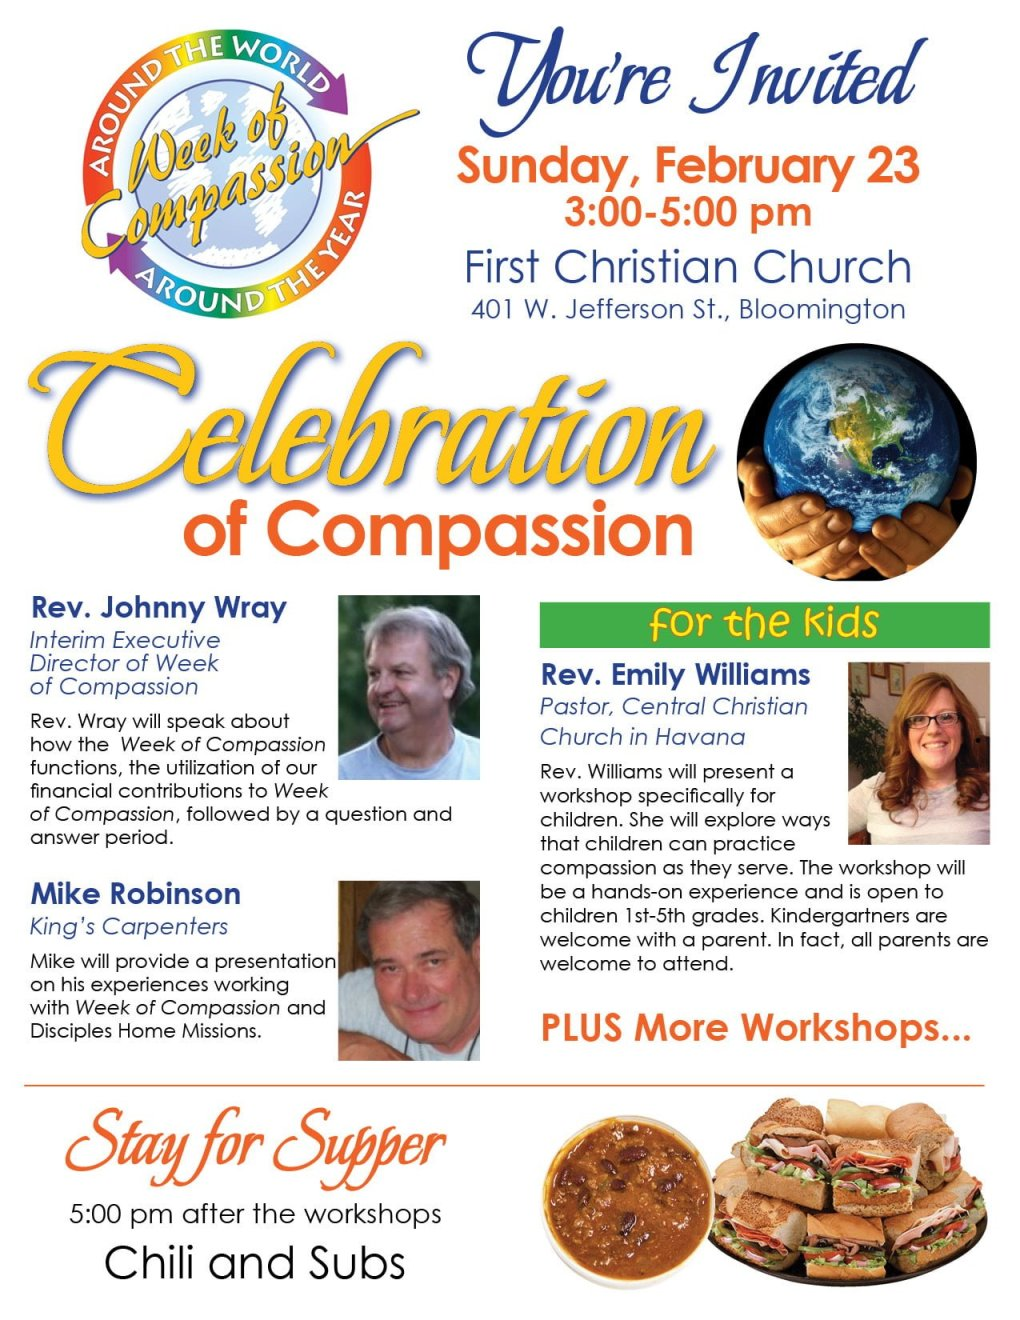 CelebrationofCompassion poster2014 (3)